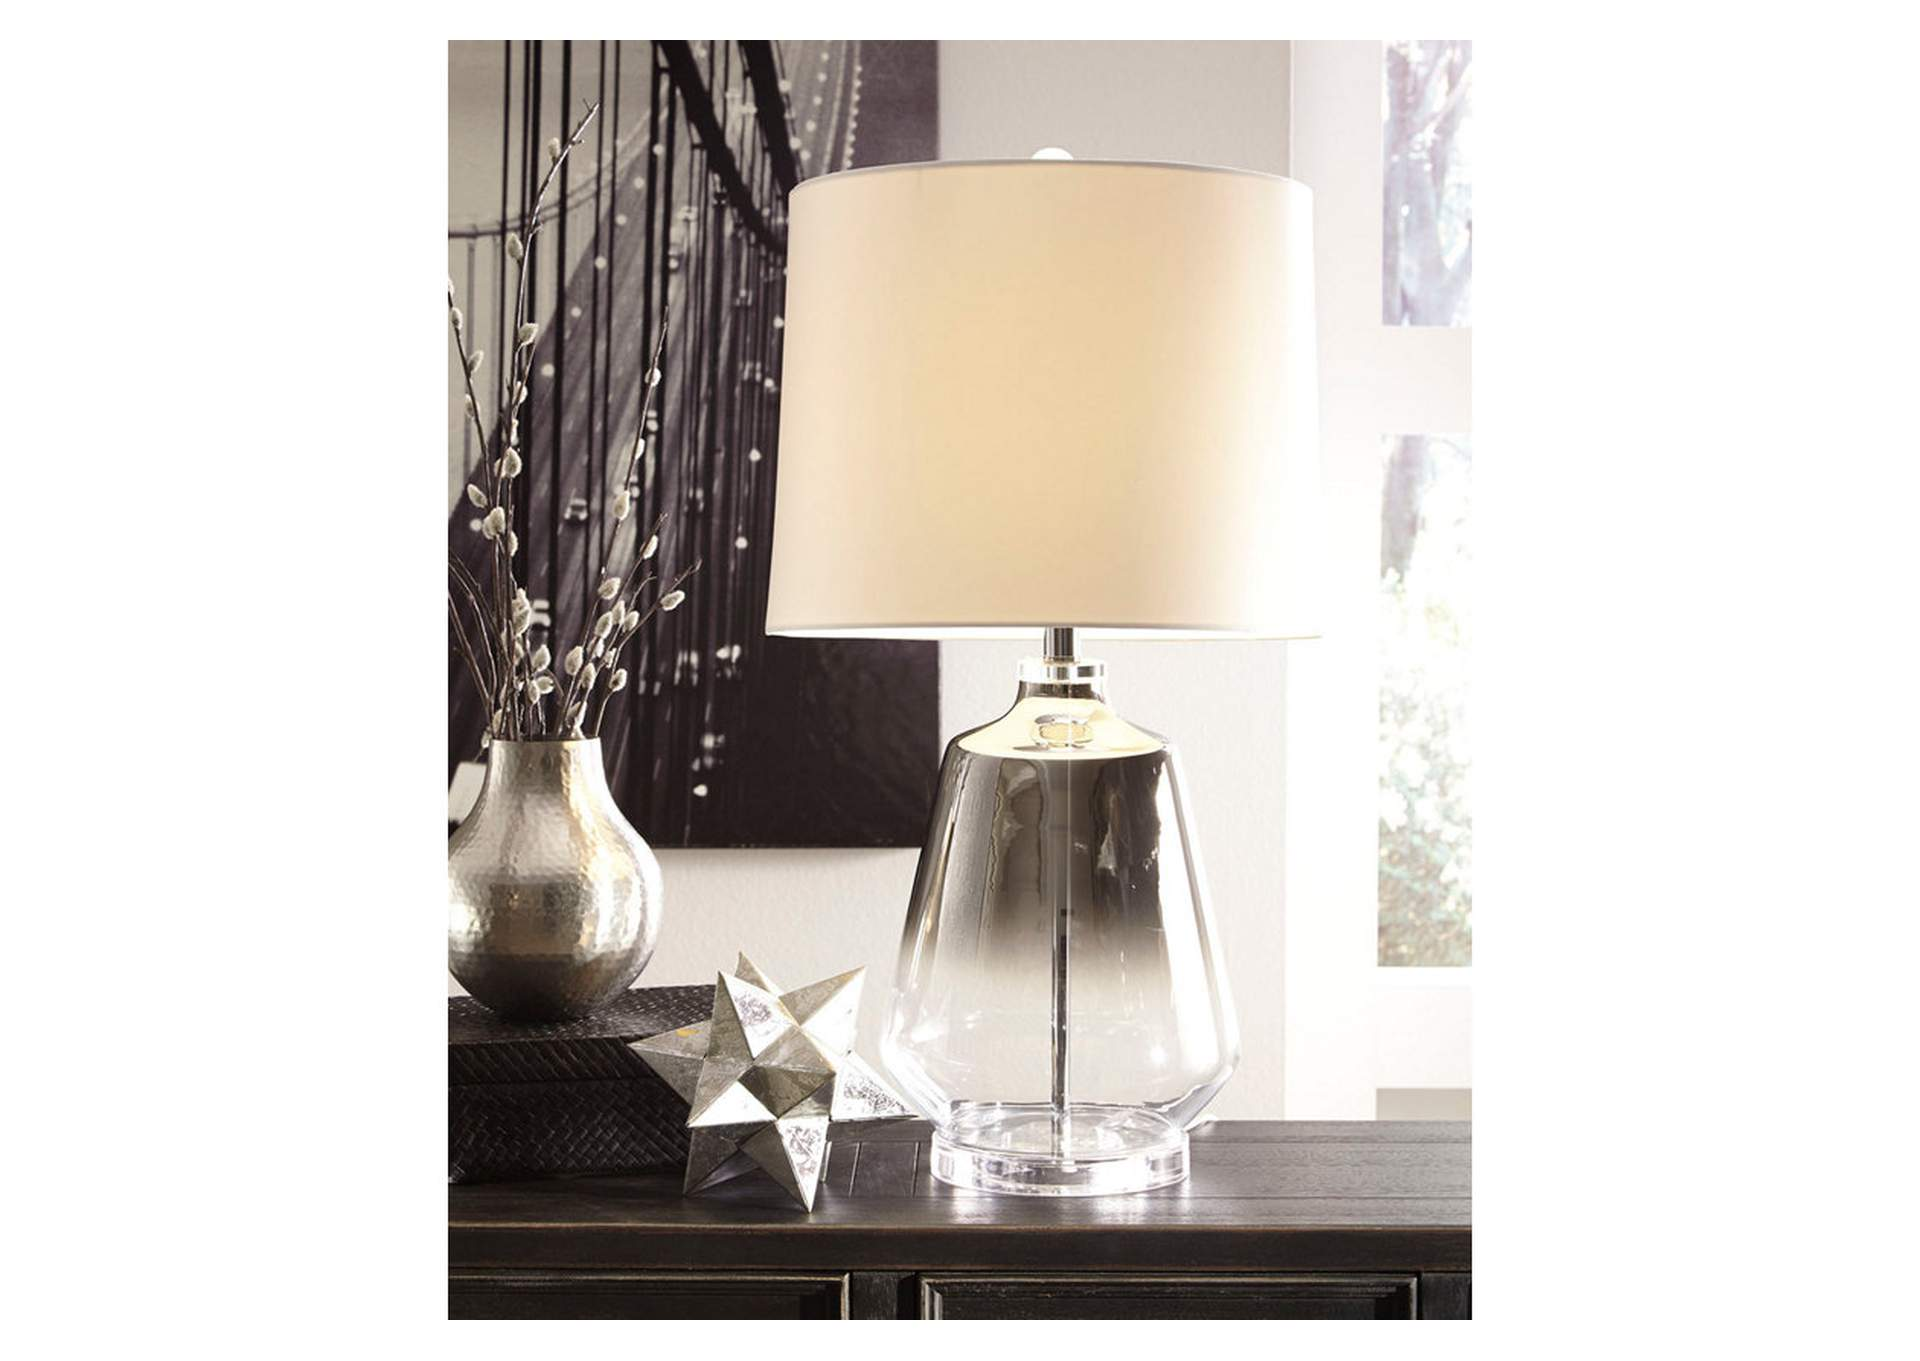 Jaslyn Silver Finish Glass Table Lamp,Direct To Consumer Express